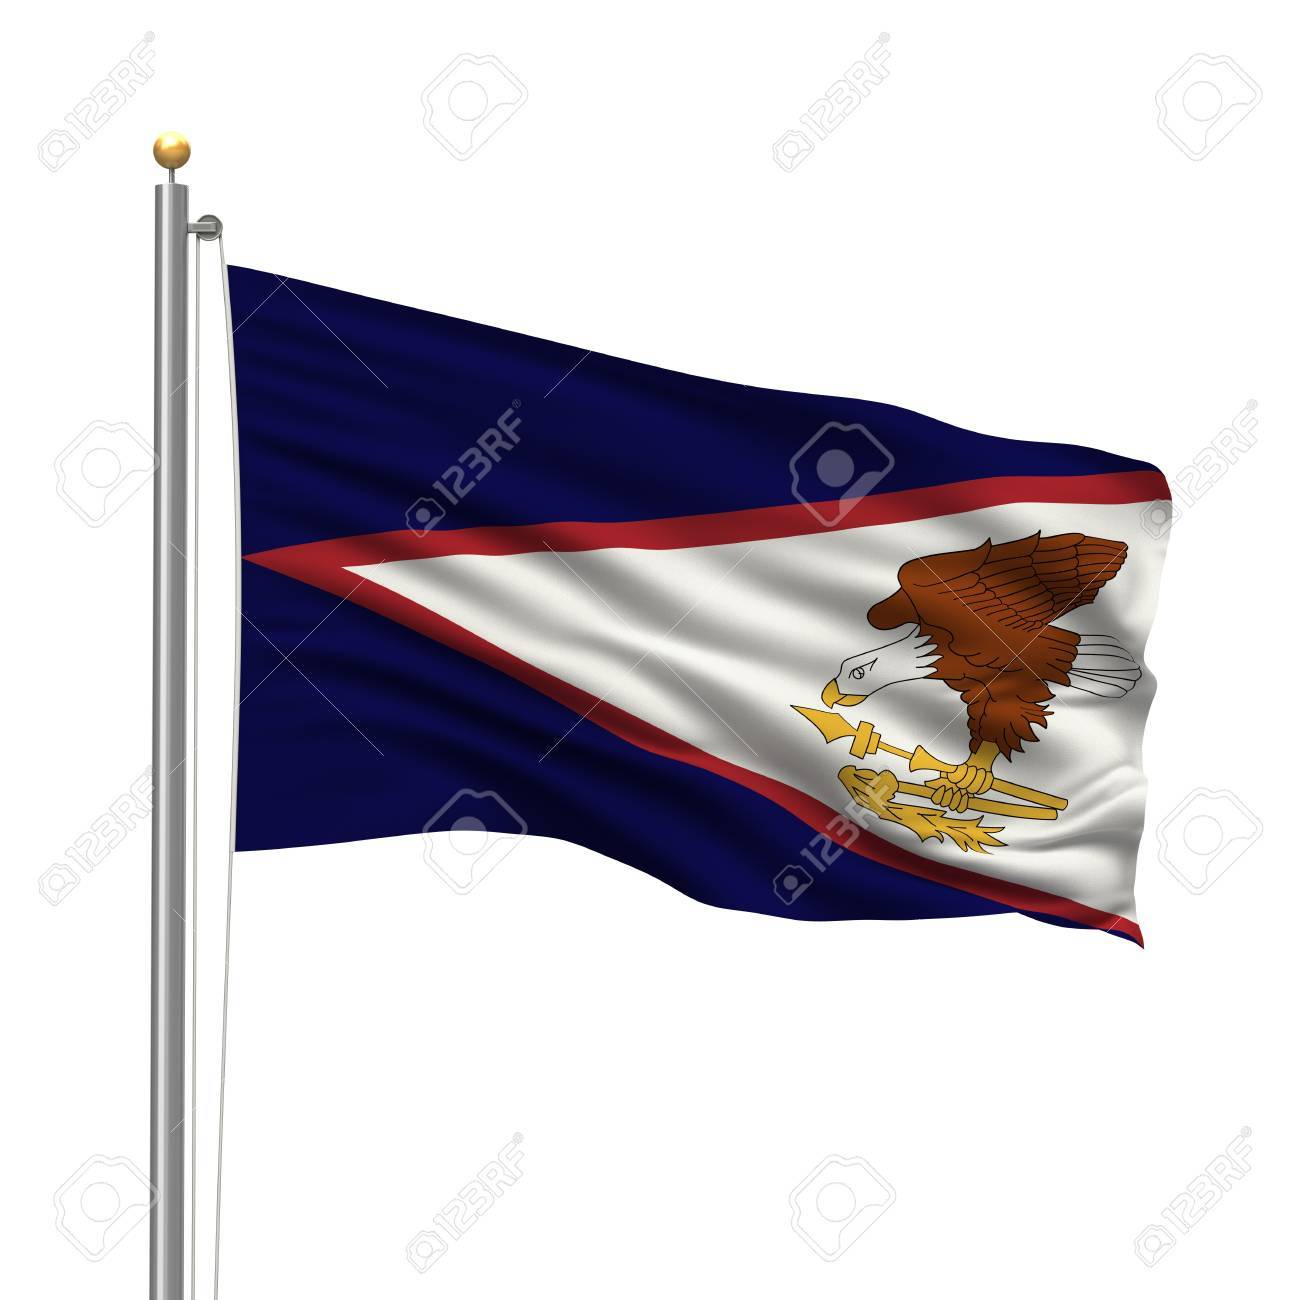 Flag of American Samoa with flag pole waving in the wind over white background Stock Photo - 8032329